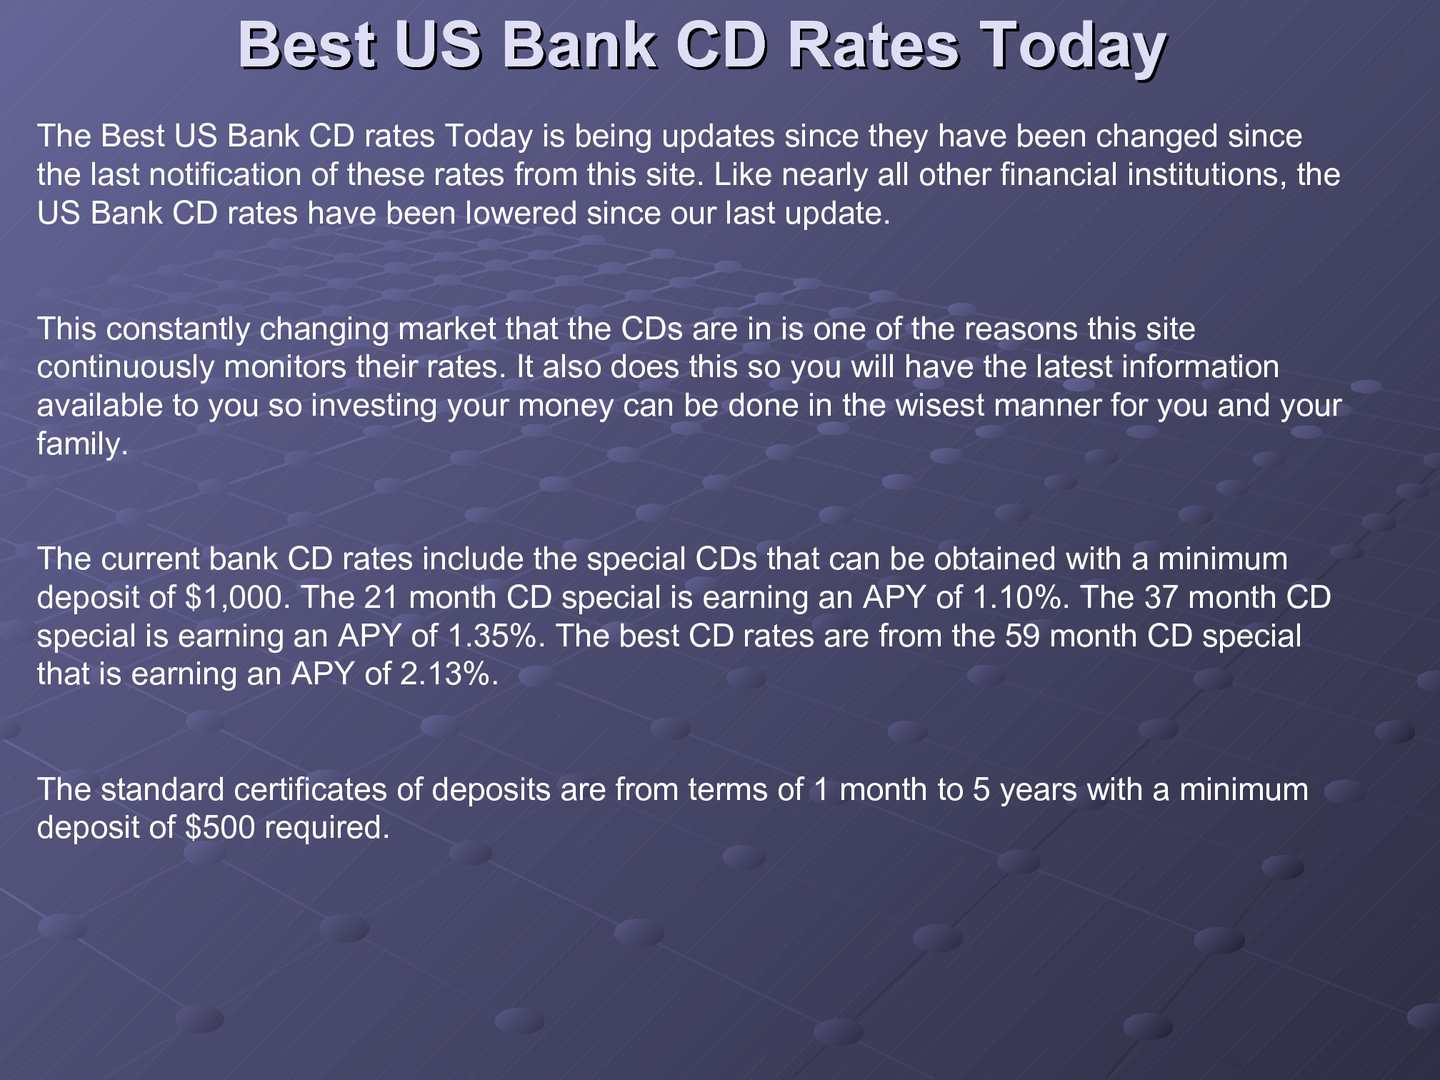 Best Cd Rates >> Calameo Best Us Bank Cd Rates Today